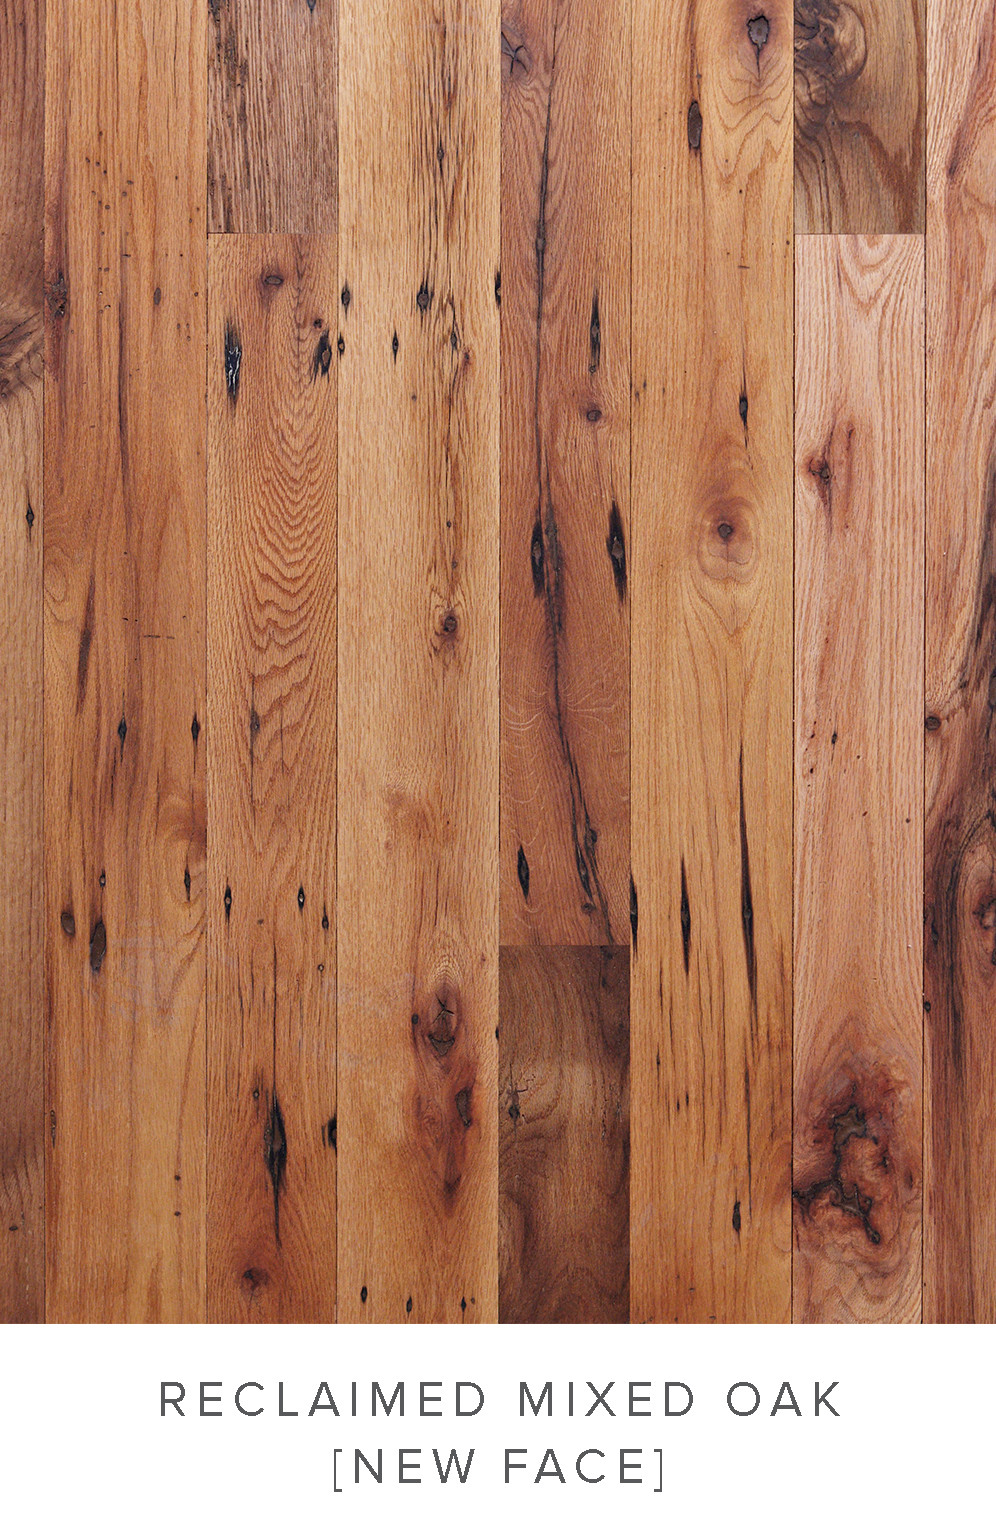 red oak hardwood floor colors of extensive range of reclaimed wood flooring all under one roof at the regarding reclaimed mixed oak new face